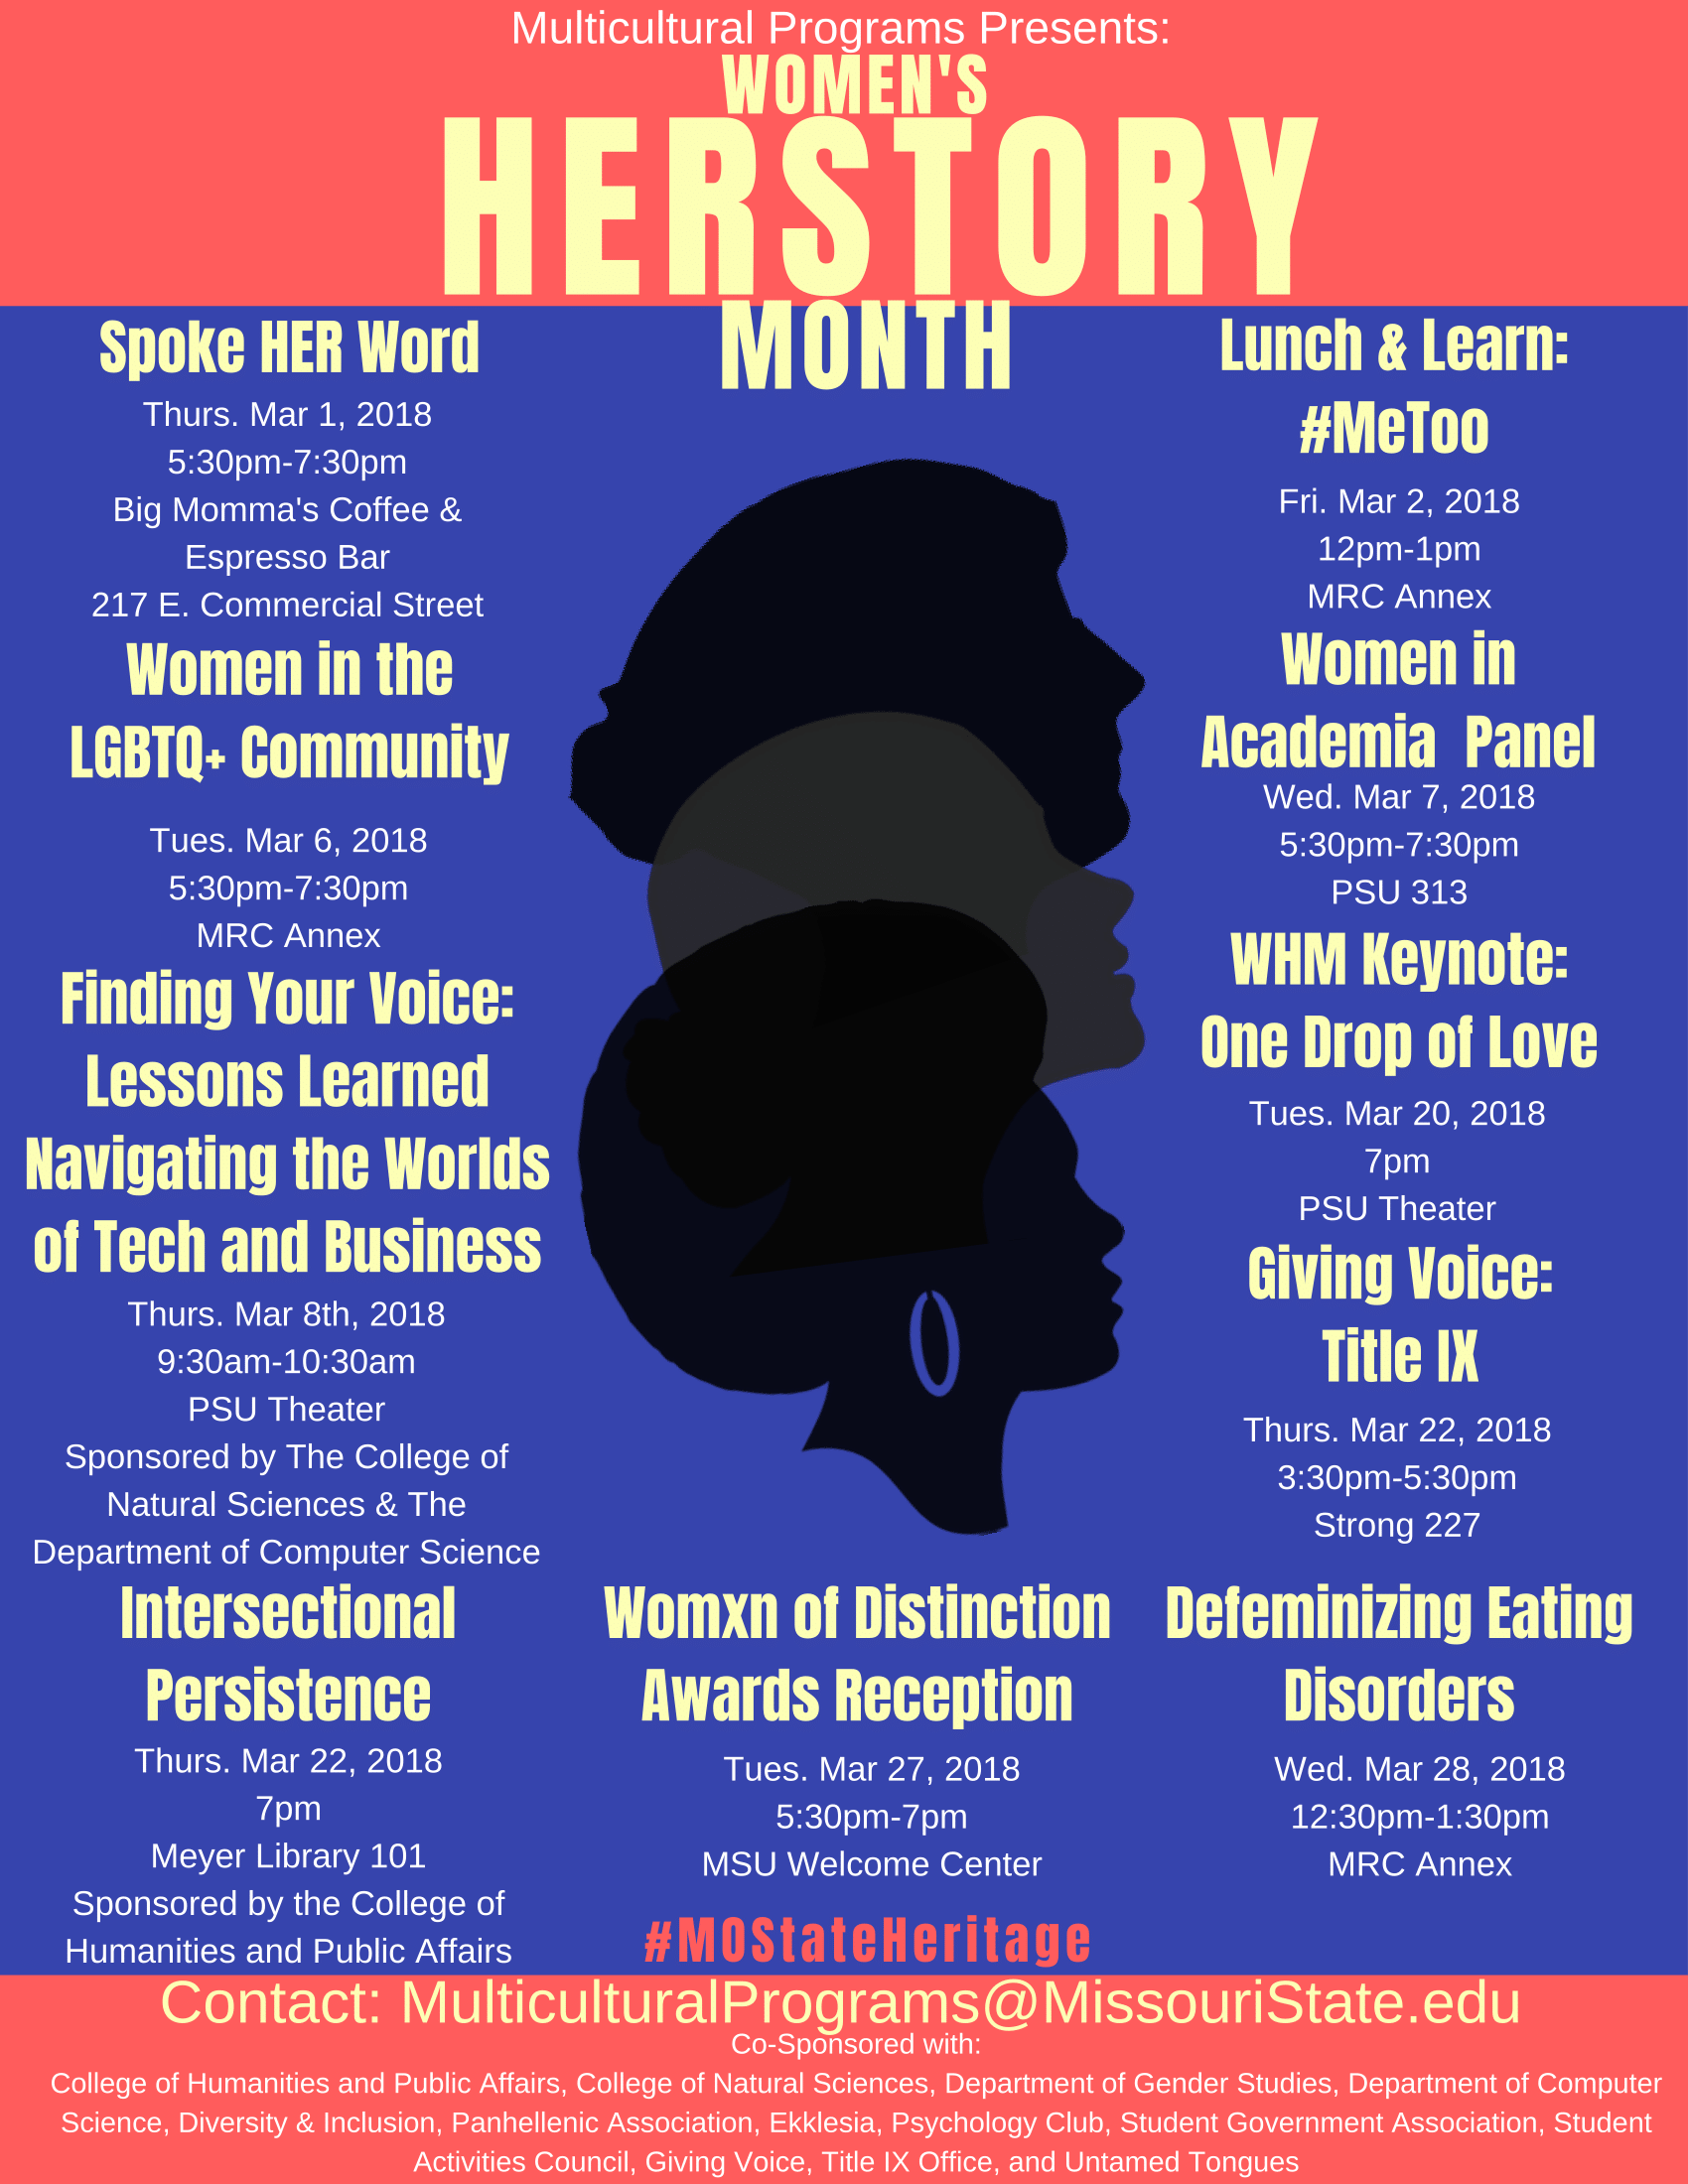 Women's HERstory Month 2018